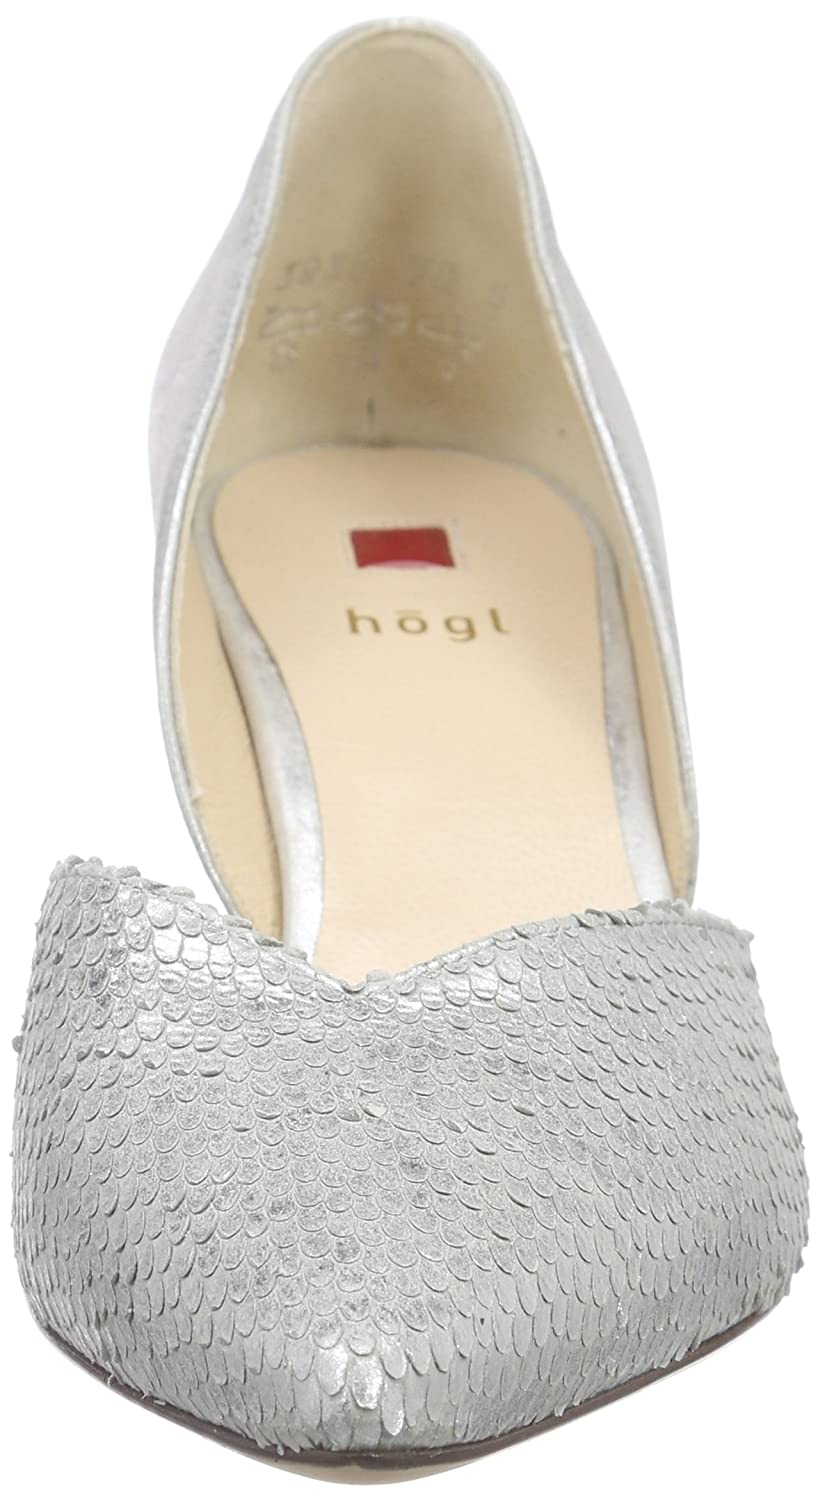 HÖGL 1-10 6738 Damen Pumps Silber Silber Pumps (7300) 54d0fe